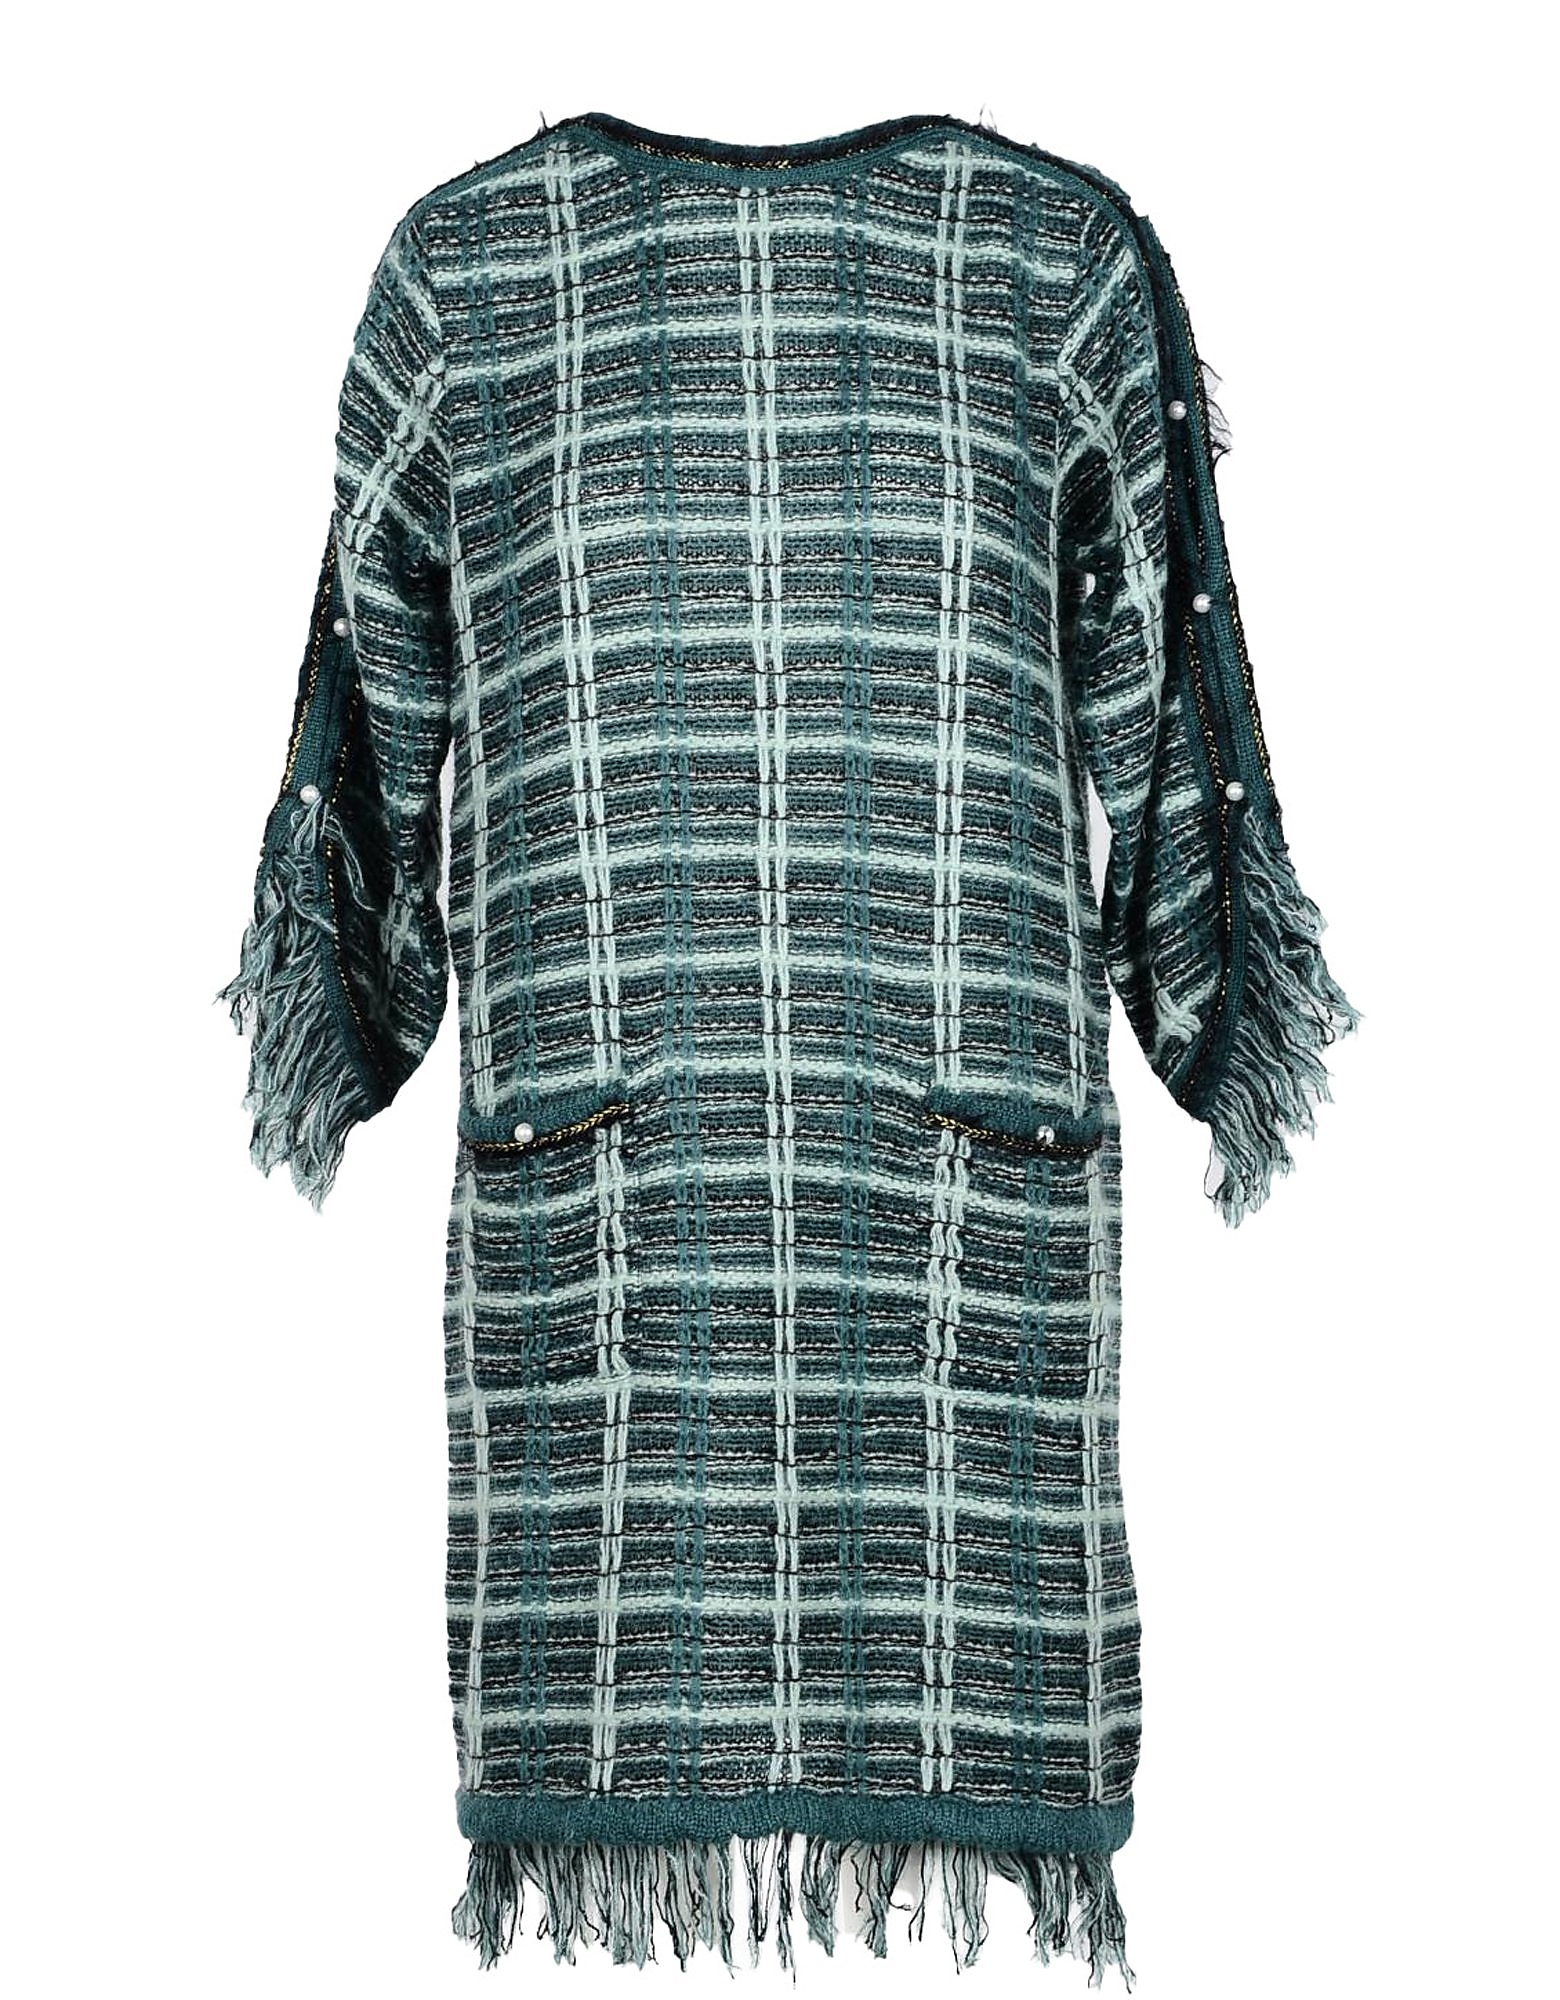 Annarita N Designer Dresses & Jumpsuits, Green Mohair Wool Blend Women's Dress